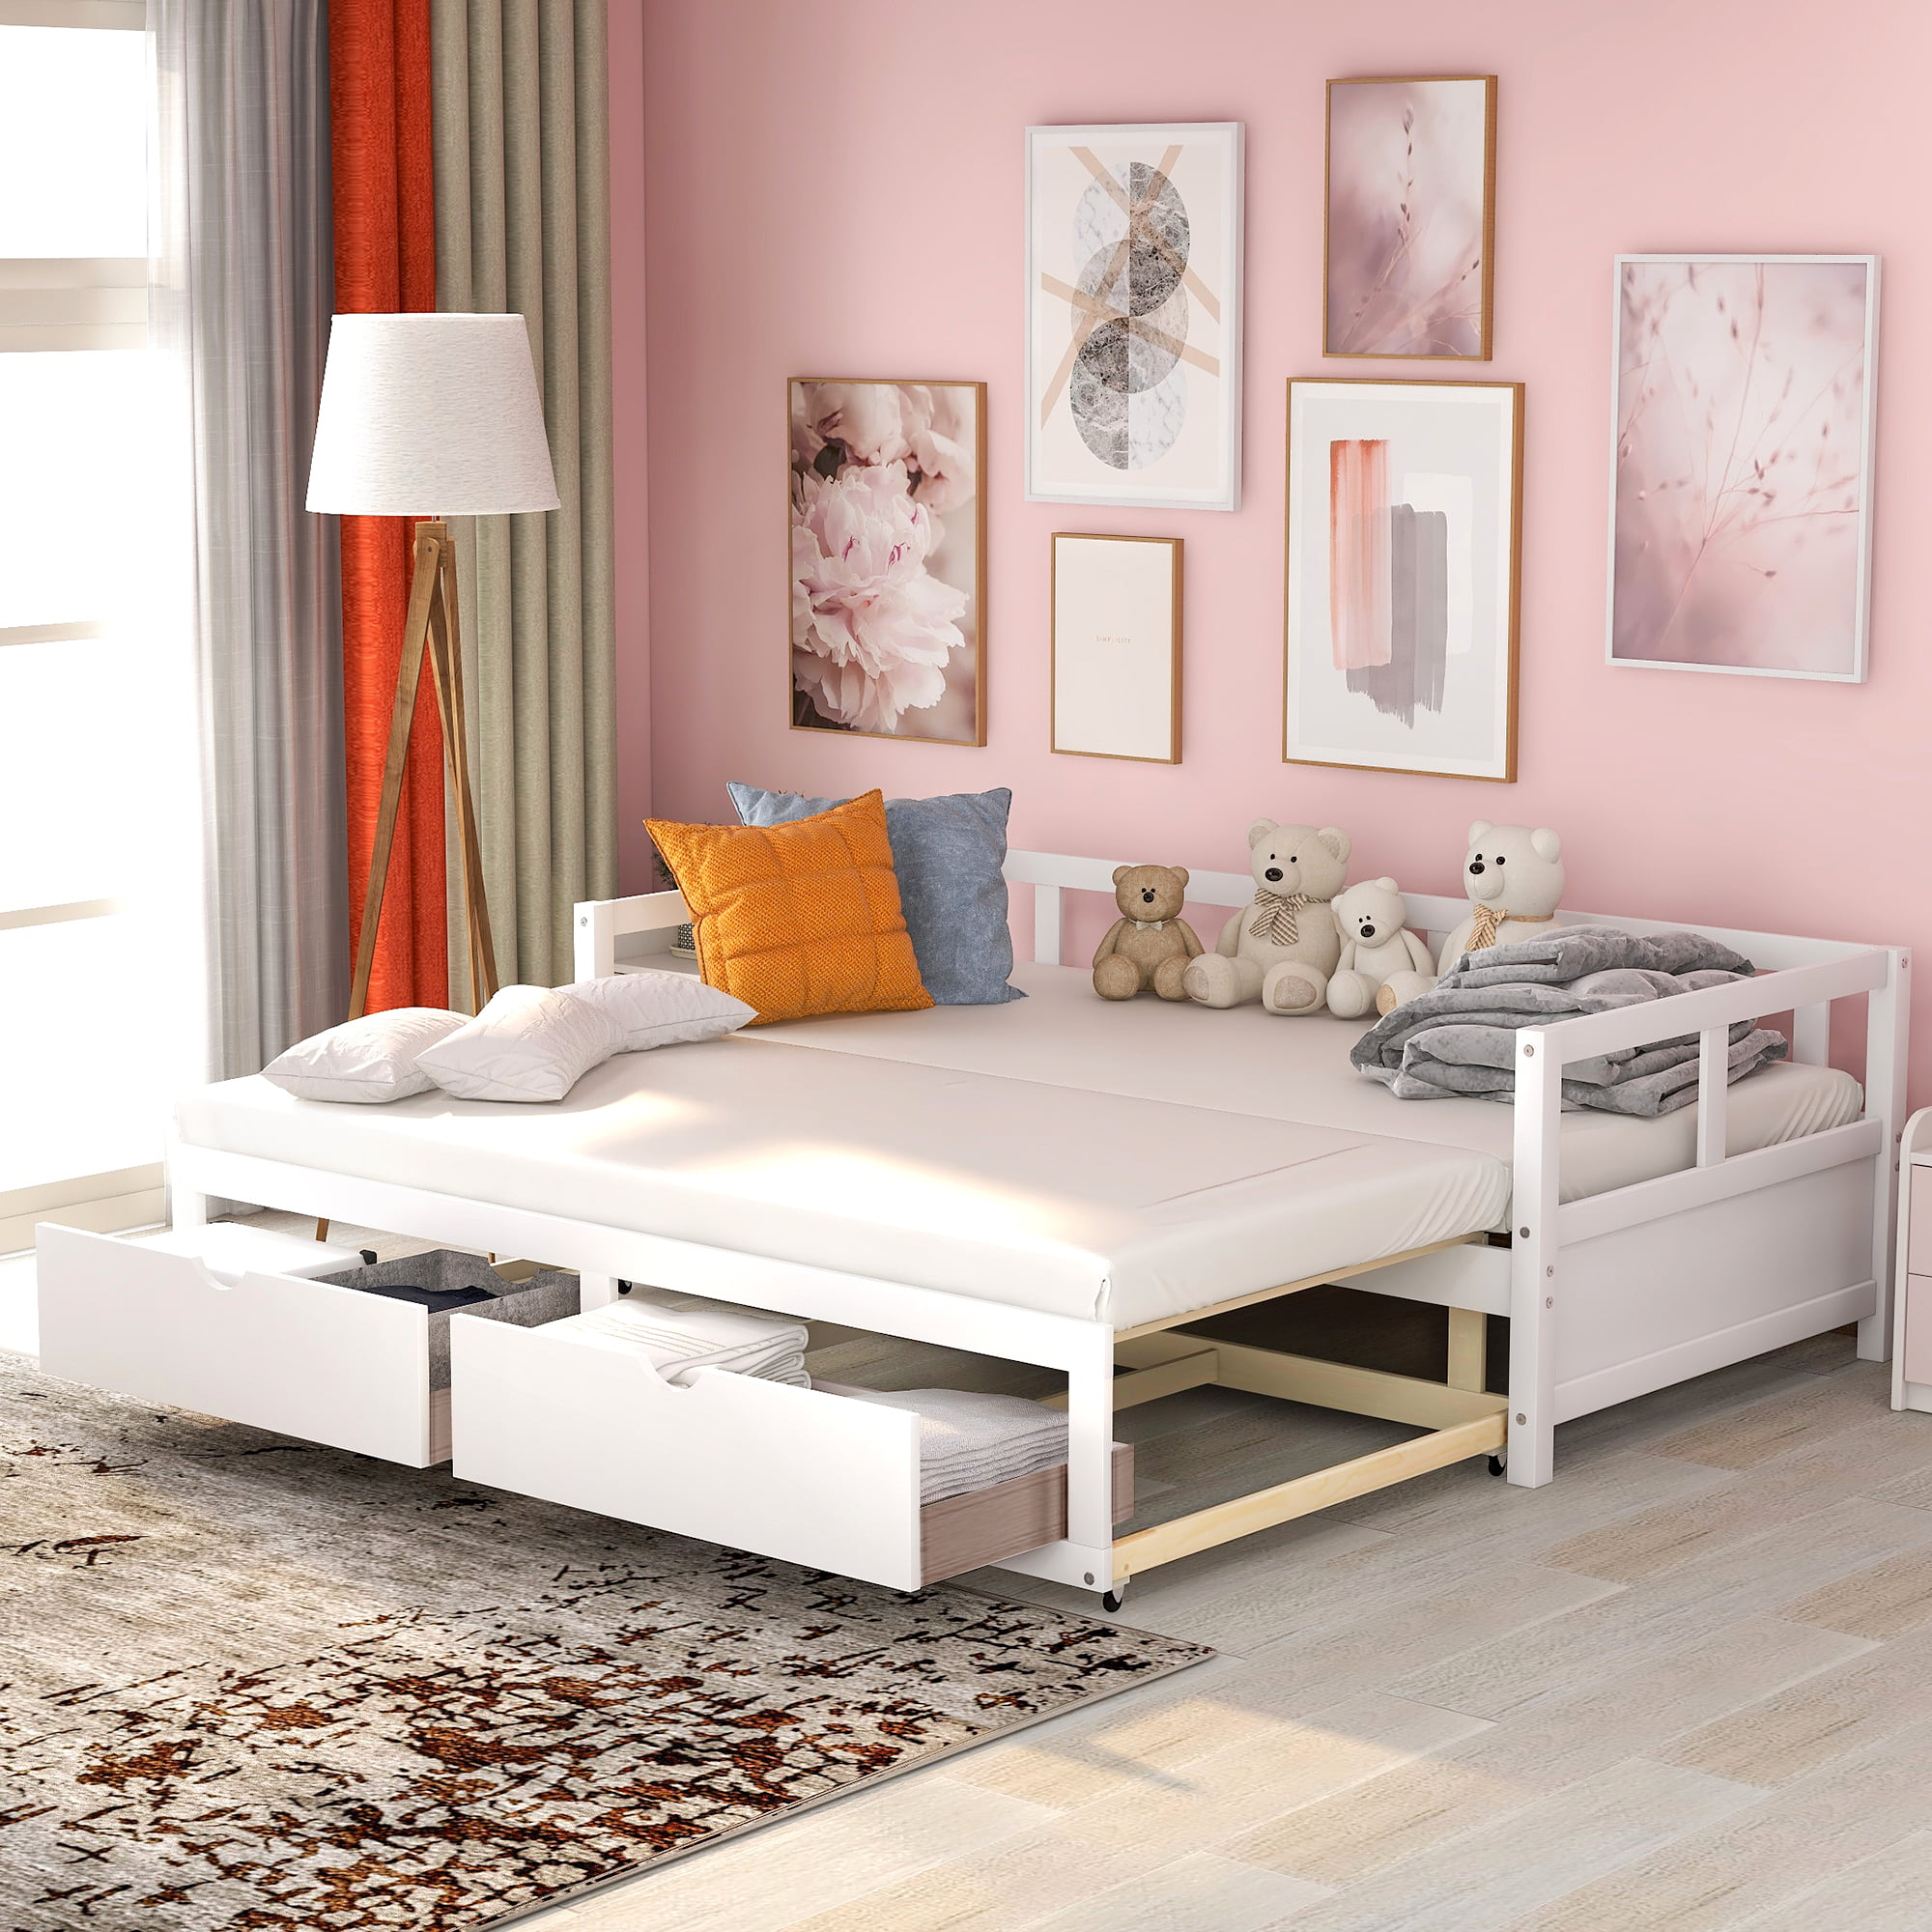 Wooden Daybed With Trundle Bed And Two Storage Drawers Extendable Bed Daybed Sofa Bed For Bedroom Living Room White Walmart Com Walmart Com